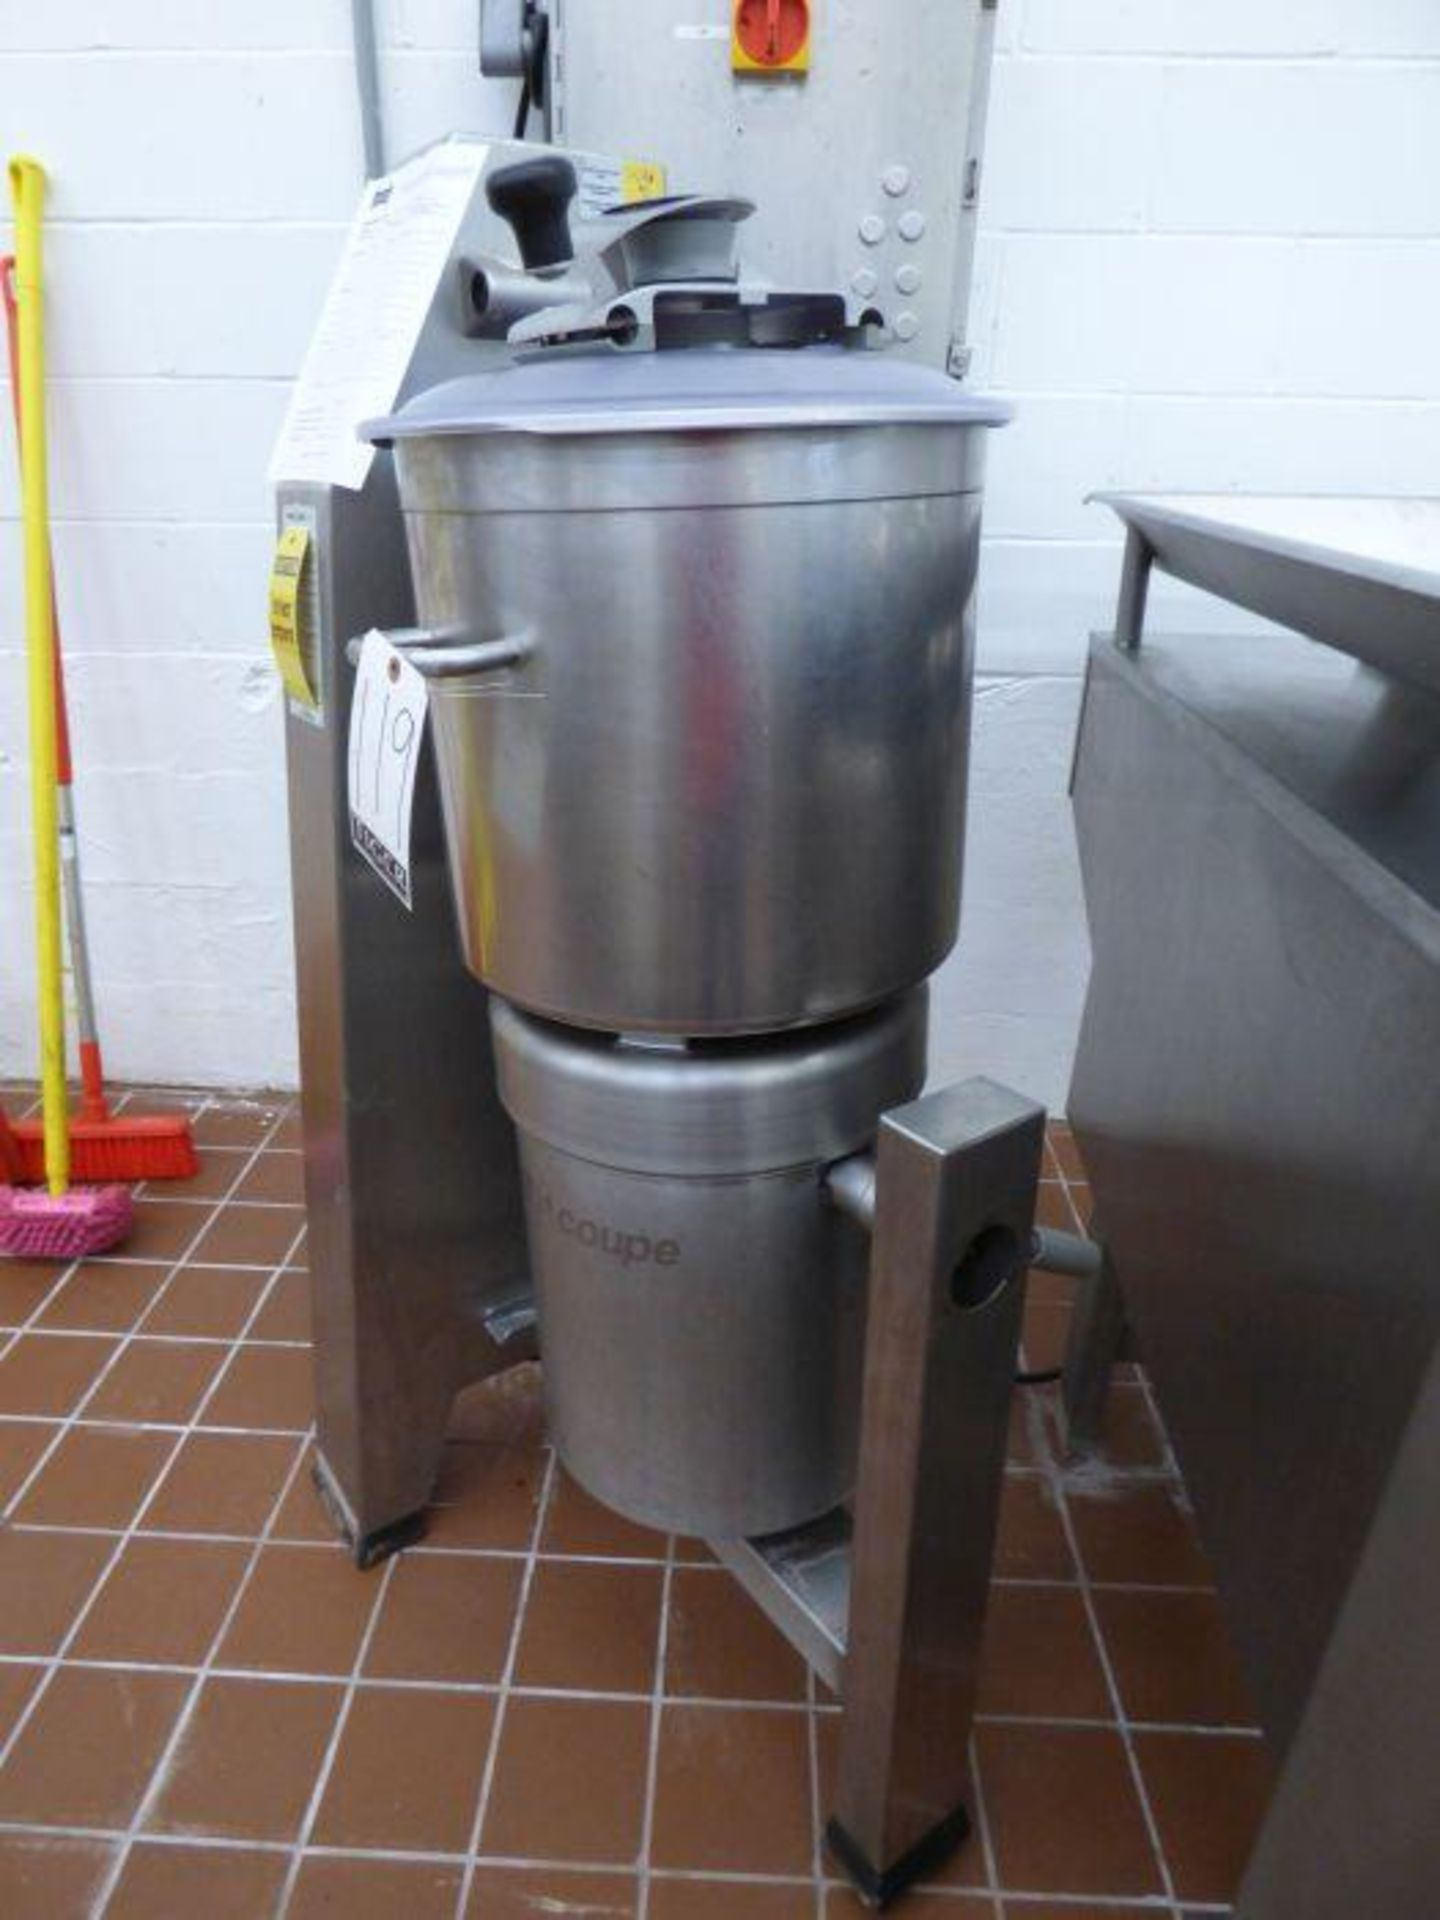 2014 Robot Coupe Vertical Cutter Mixer - Image 4 of 6